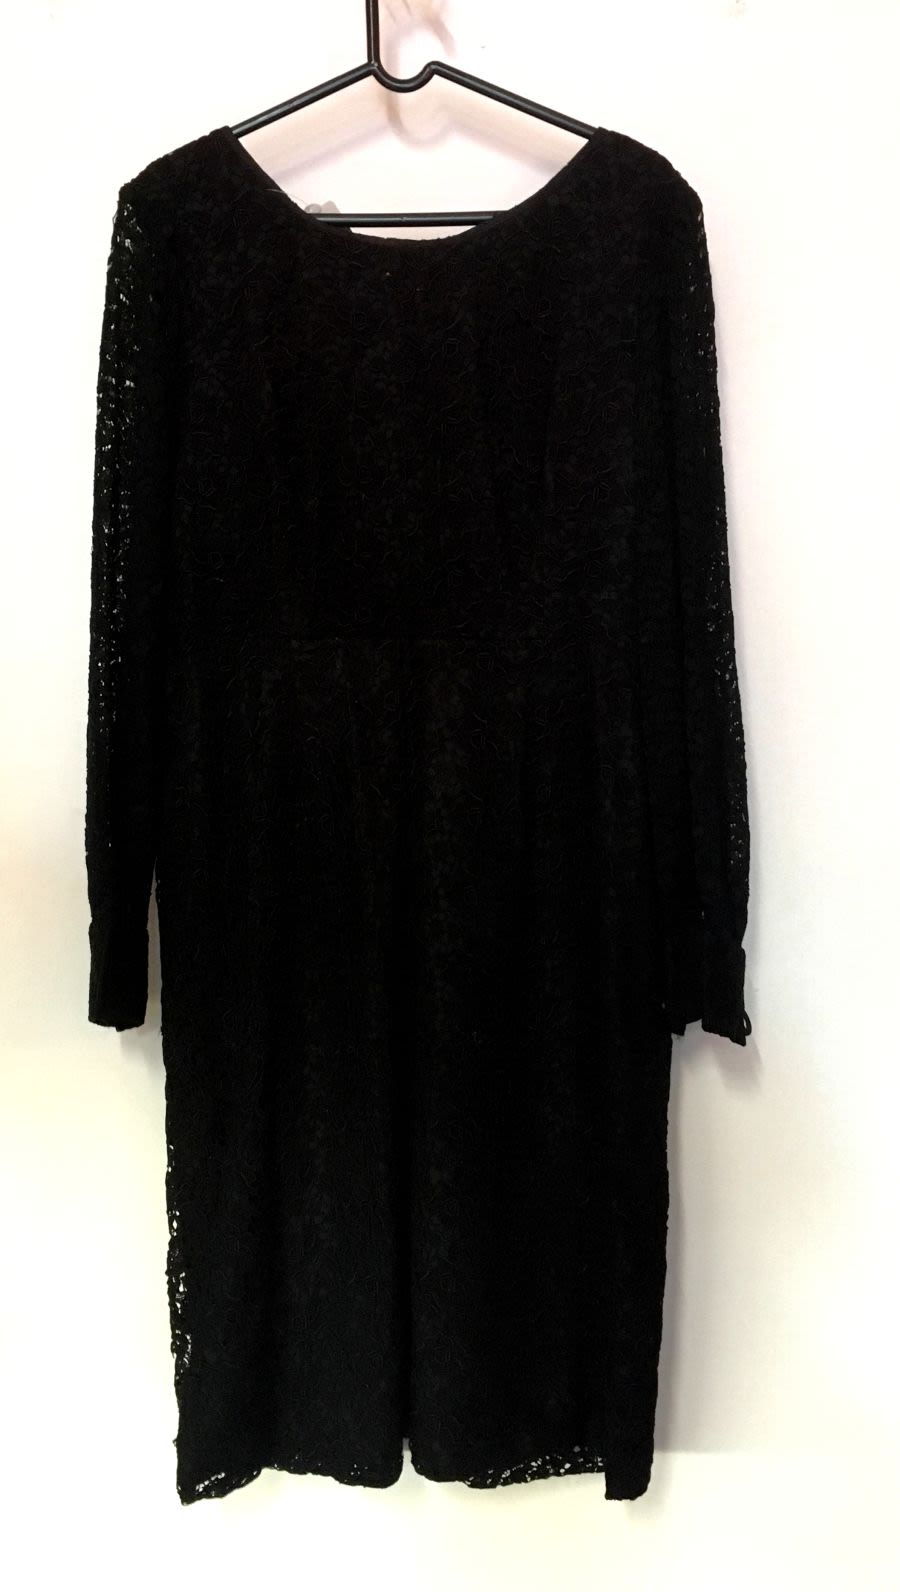 Vintage 1960s Black Lace Dress